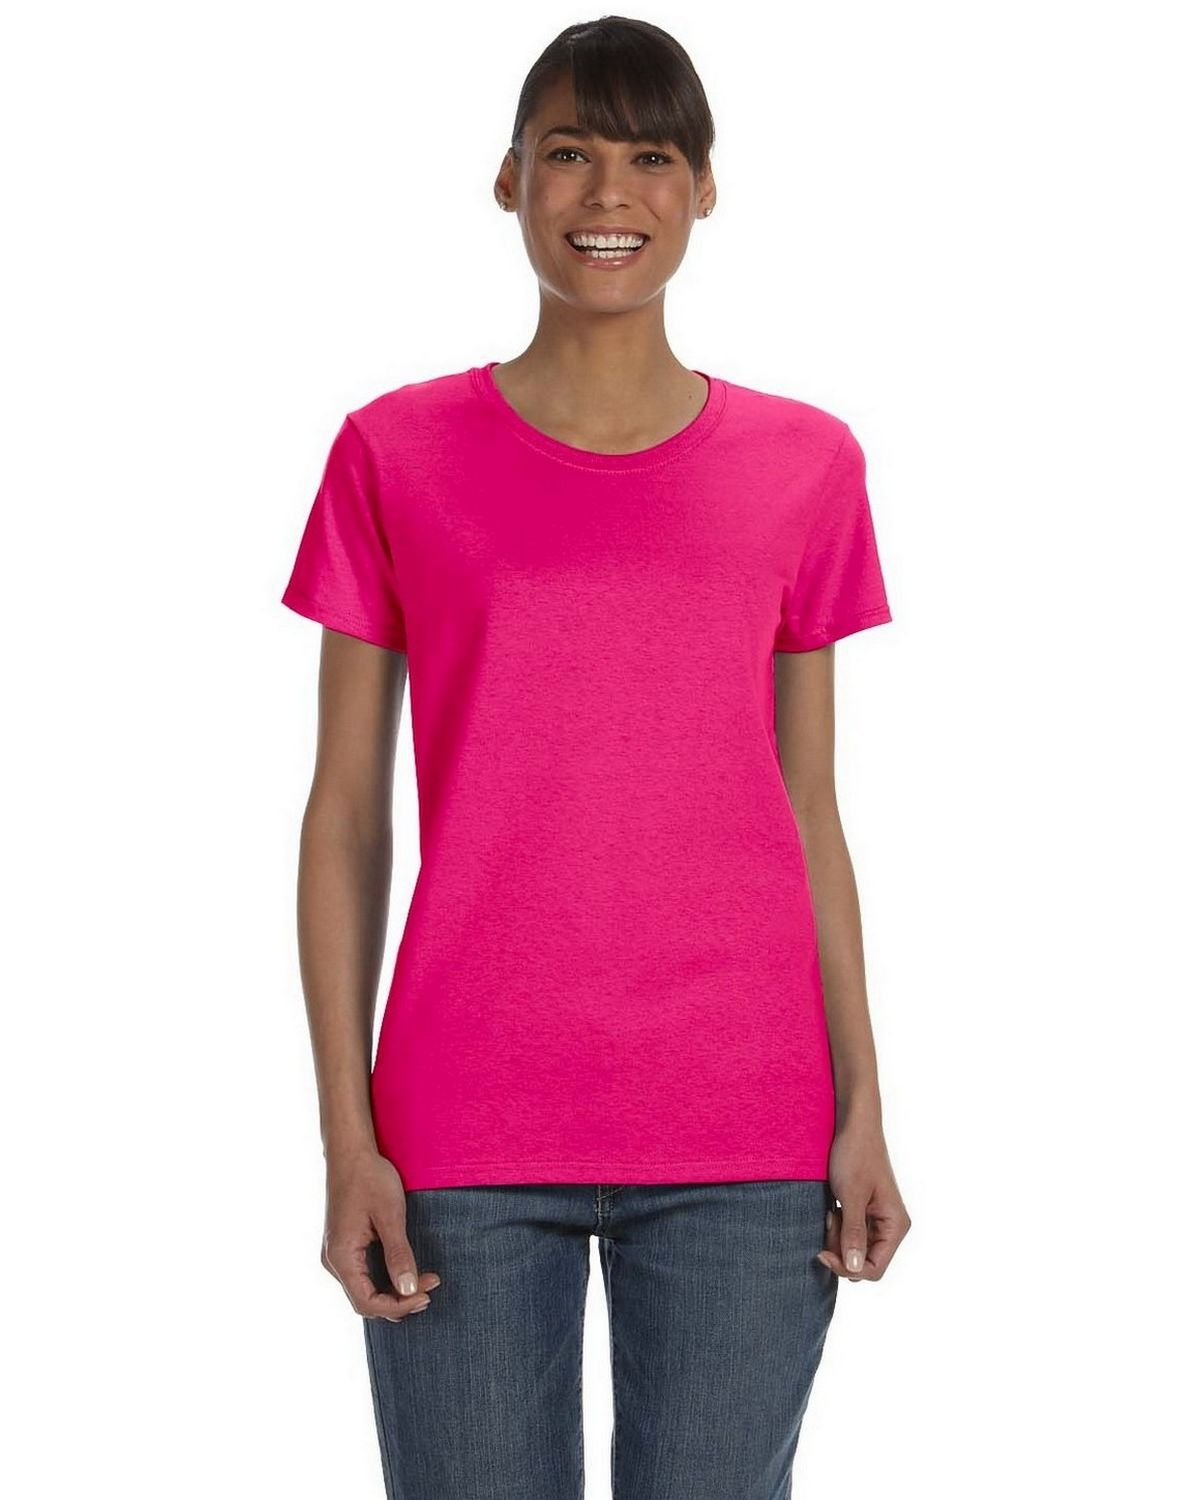 Gildan G500L Ladie Heavy Cotton Missy Fit T Shirt - ApparelnBags.com